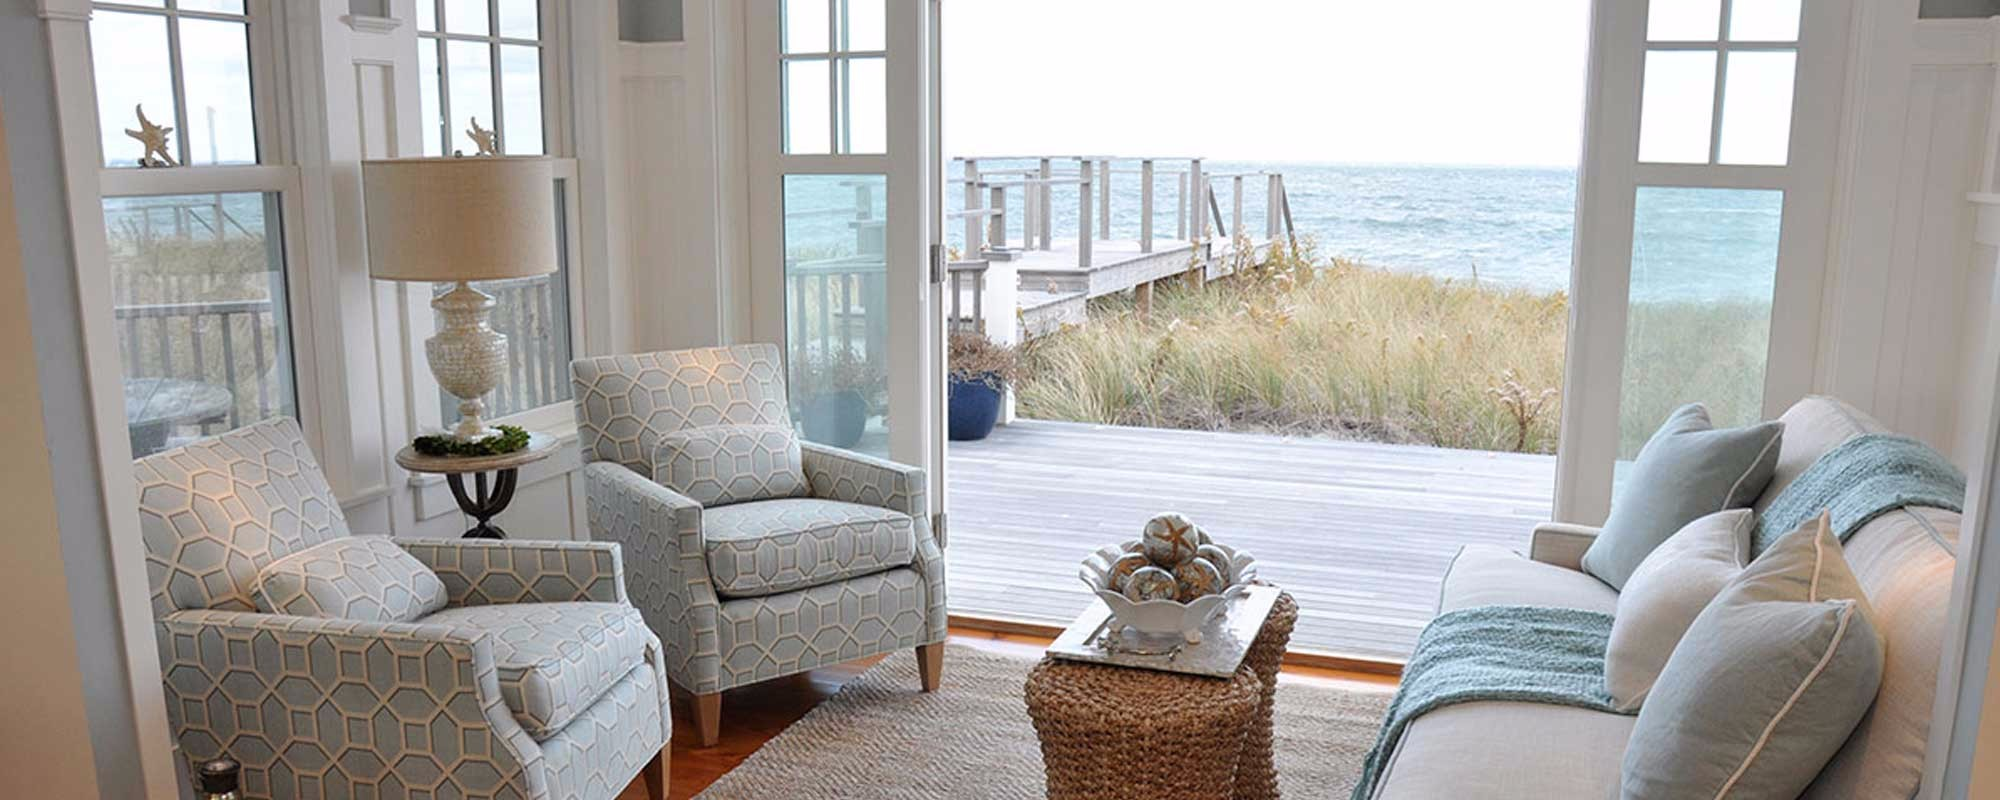 Interior design cape cod ma casabella interiors for Home interiors decor